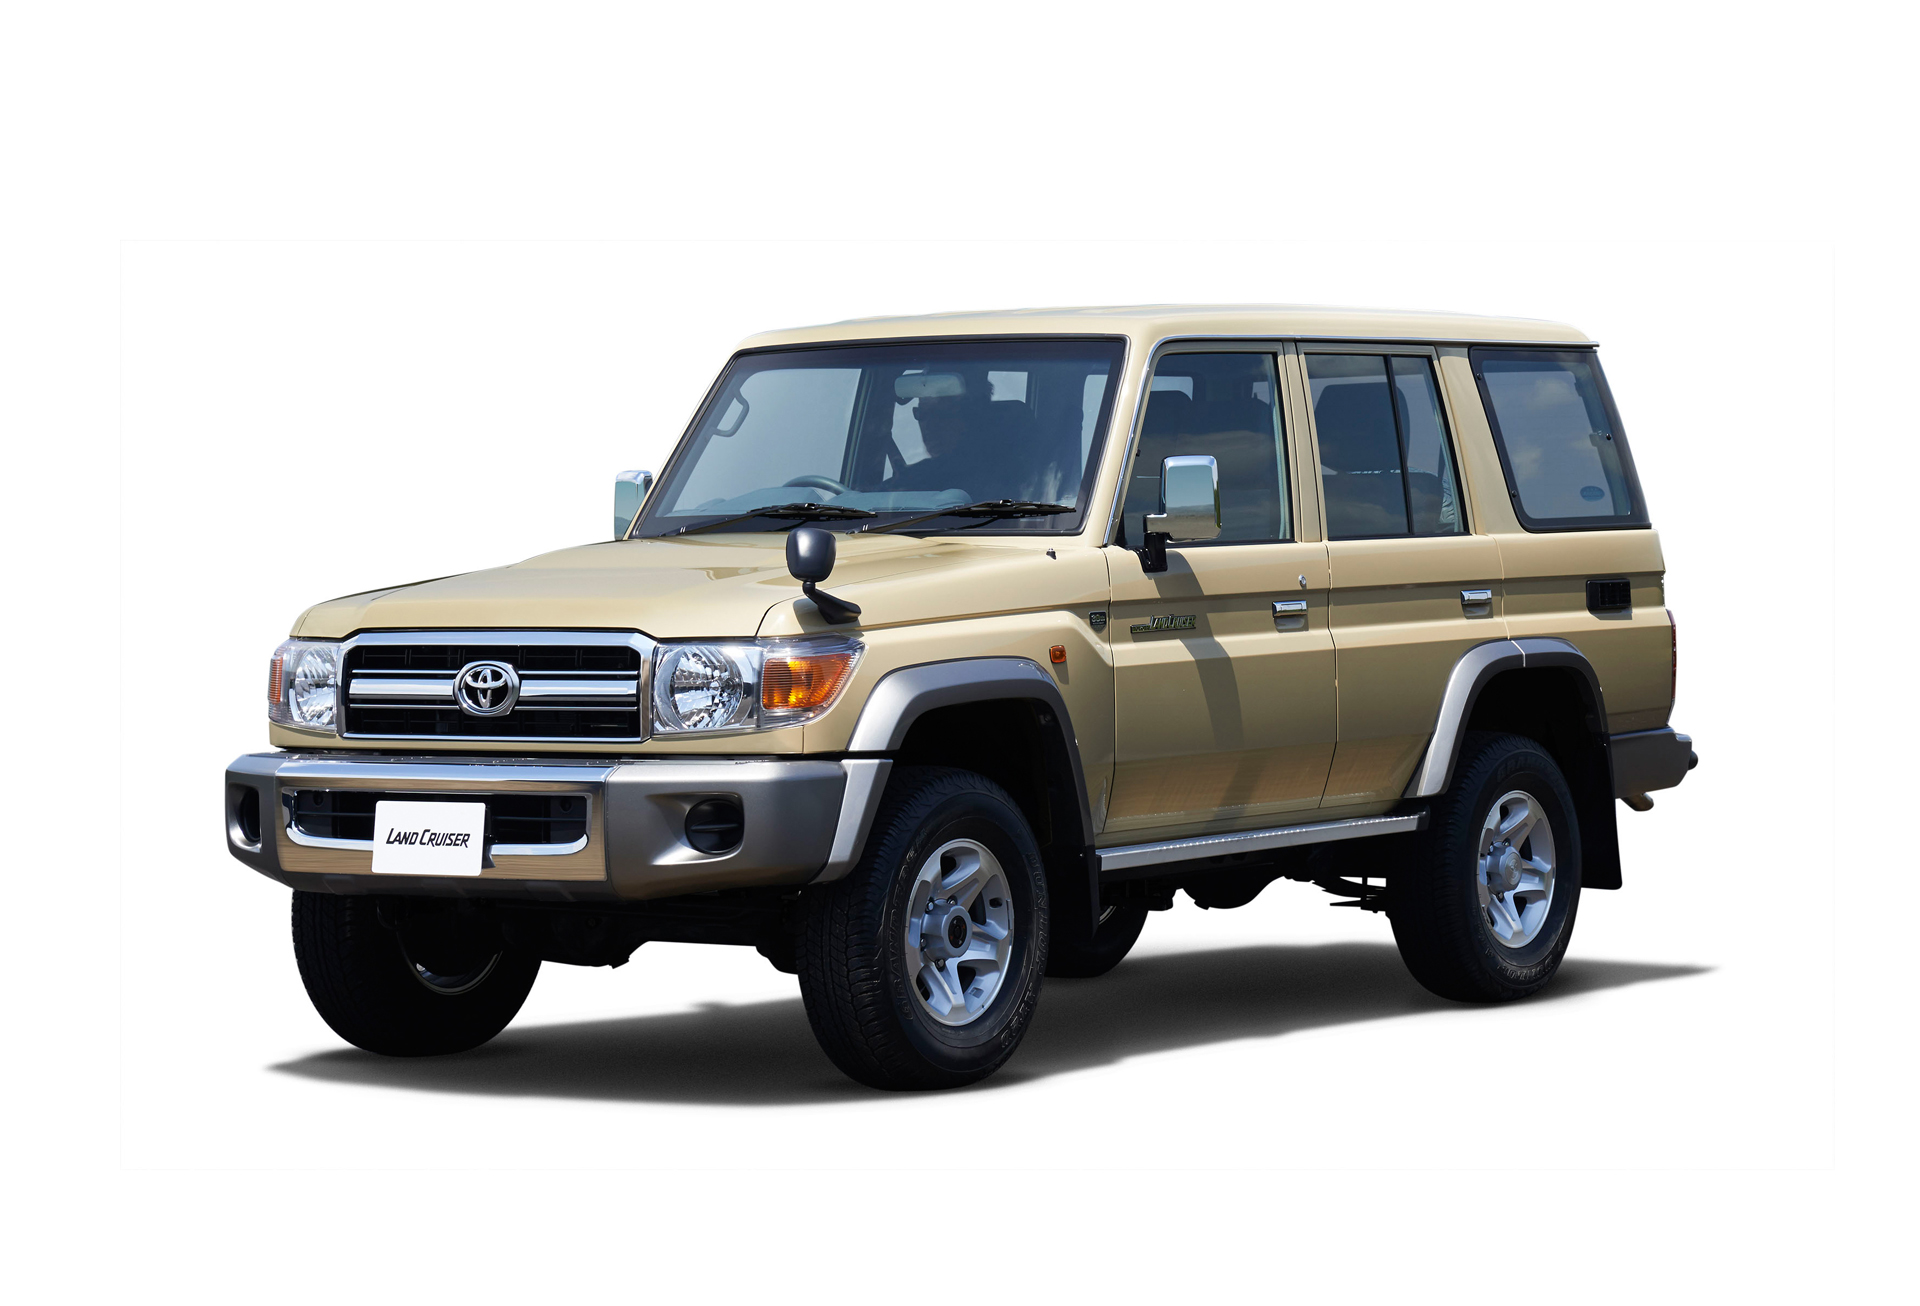 30 Years Of Toyota Land Cruiser 70 Celebrating With Limited Edition Models 85655 also 1972 Mercedes Benz 250 photo moreover 2525851962 besides Watch as well One Wire Alternator Wiring Diagram Chevy Inside Ford Alternator Wiring Diagram. on 2008 toyota celica gt